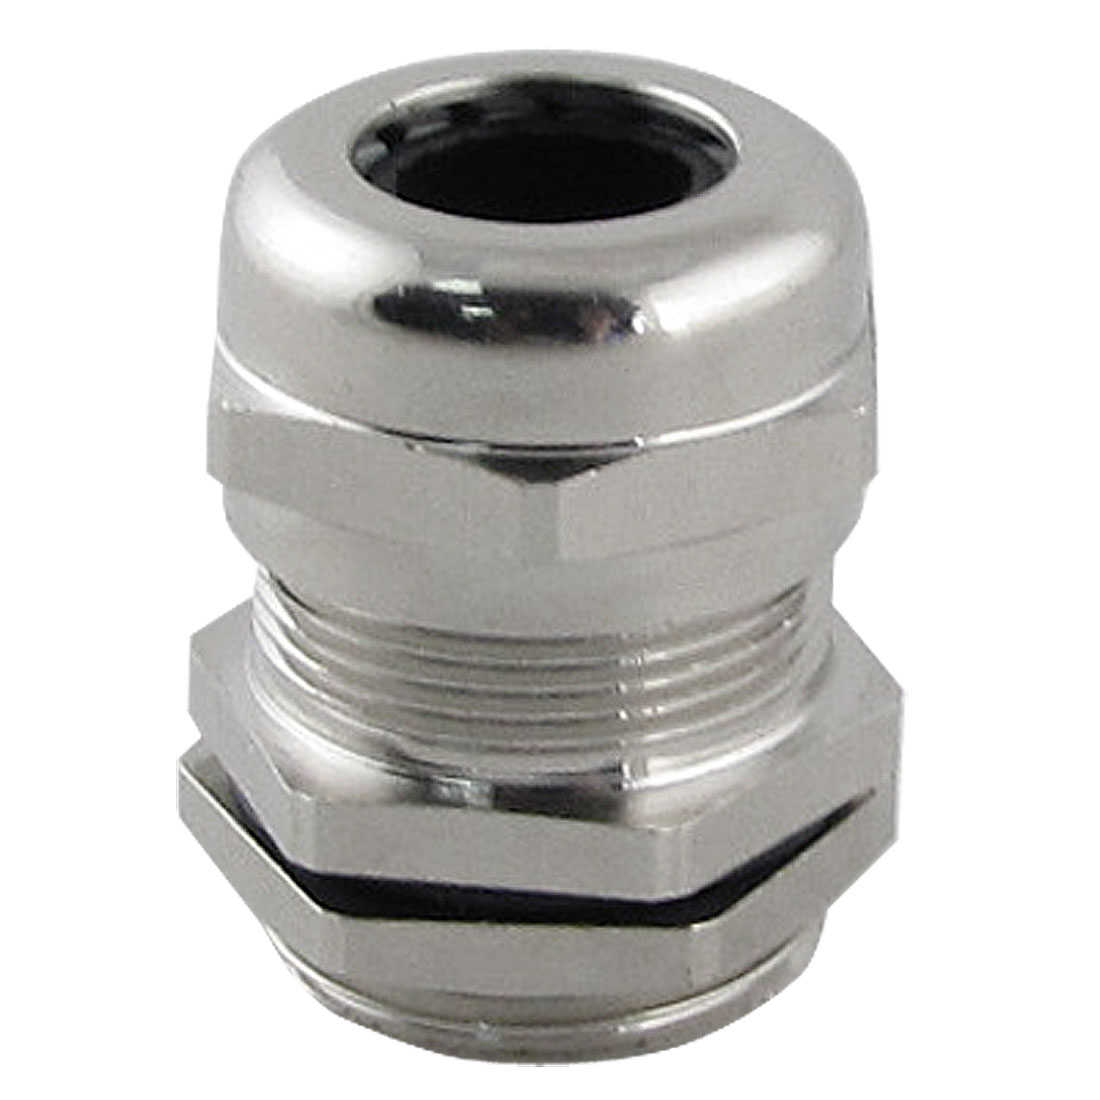 Unique Bargains M20 20mm Thread OD Cable Gland Connector 6.0-12.0mm w Locknut